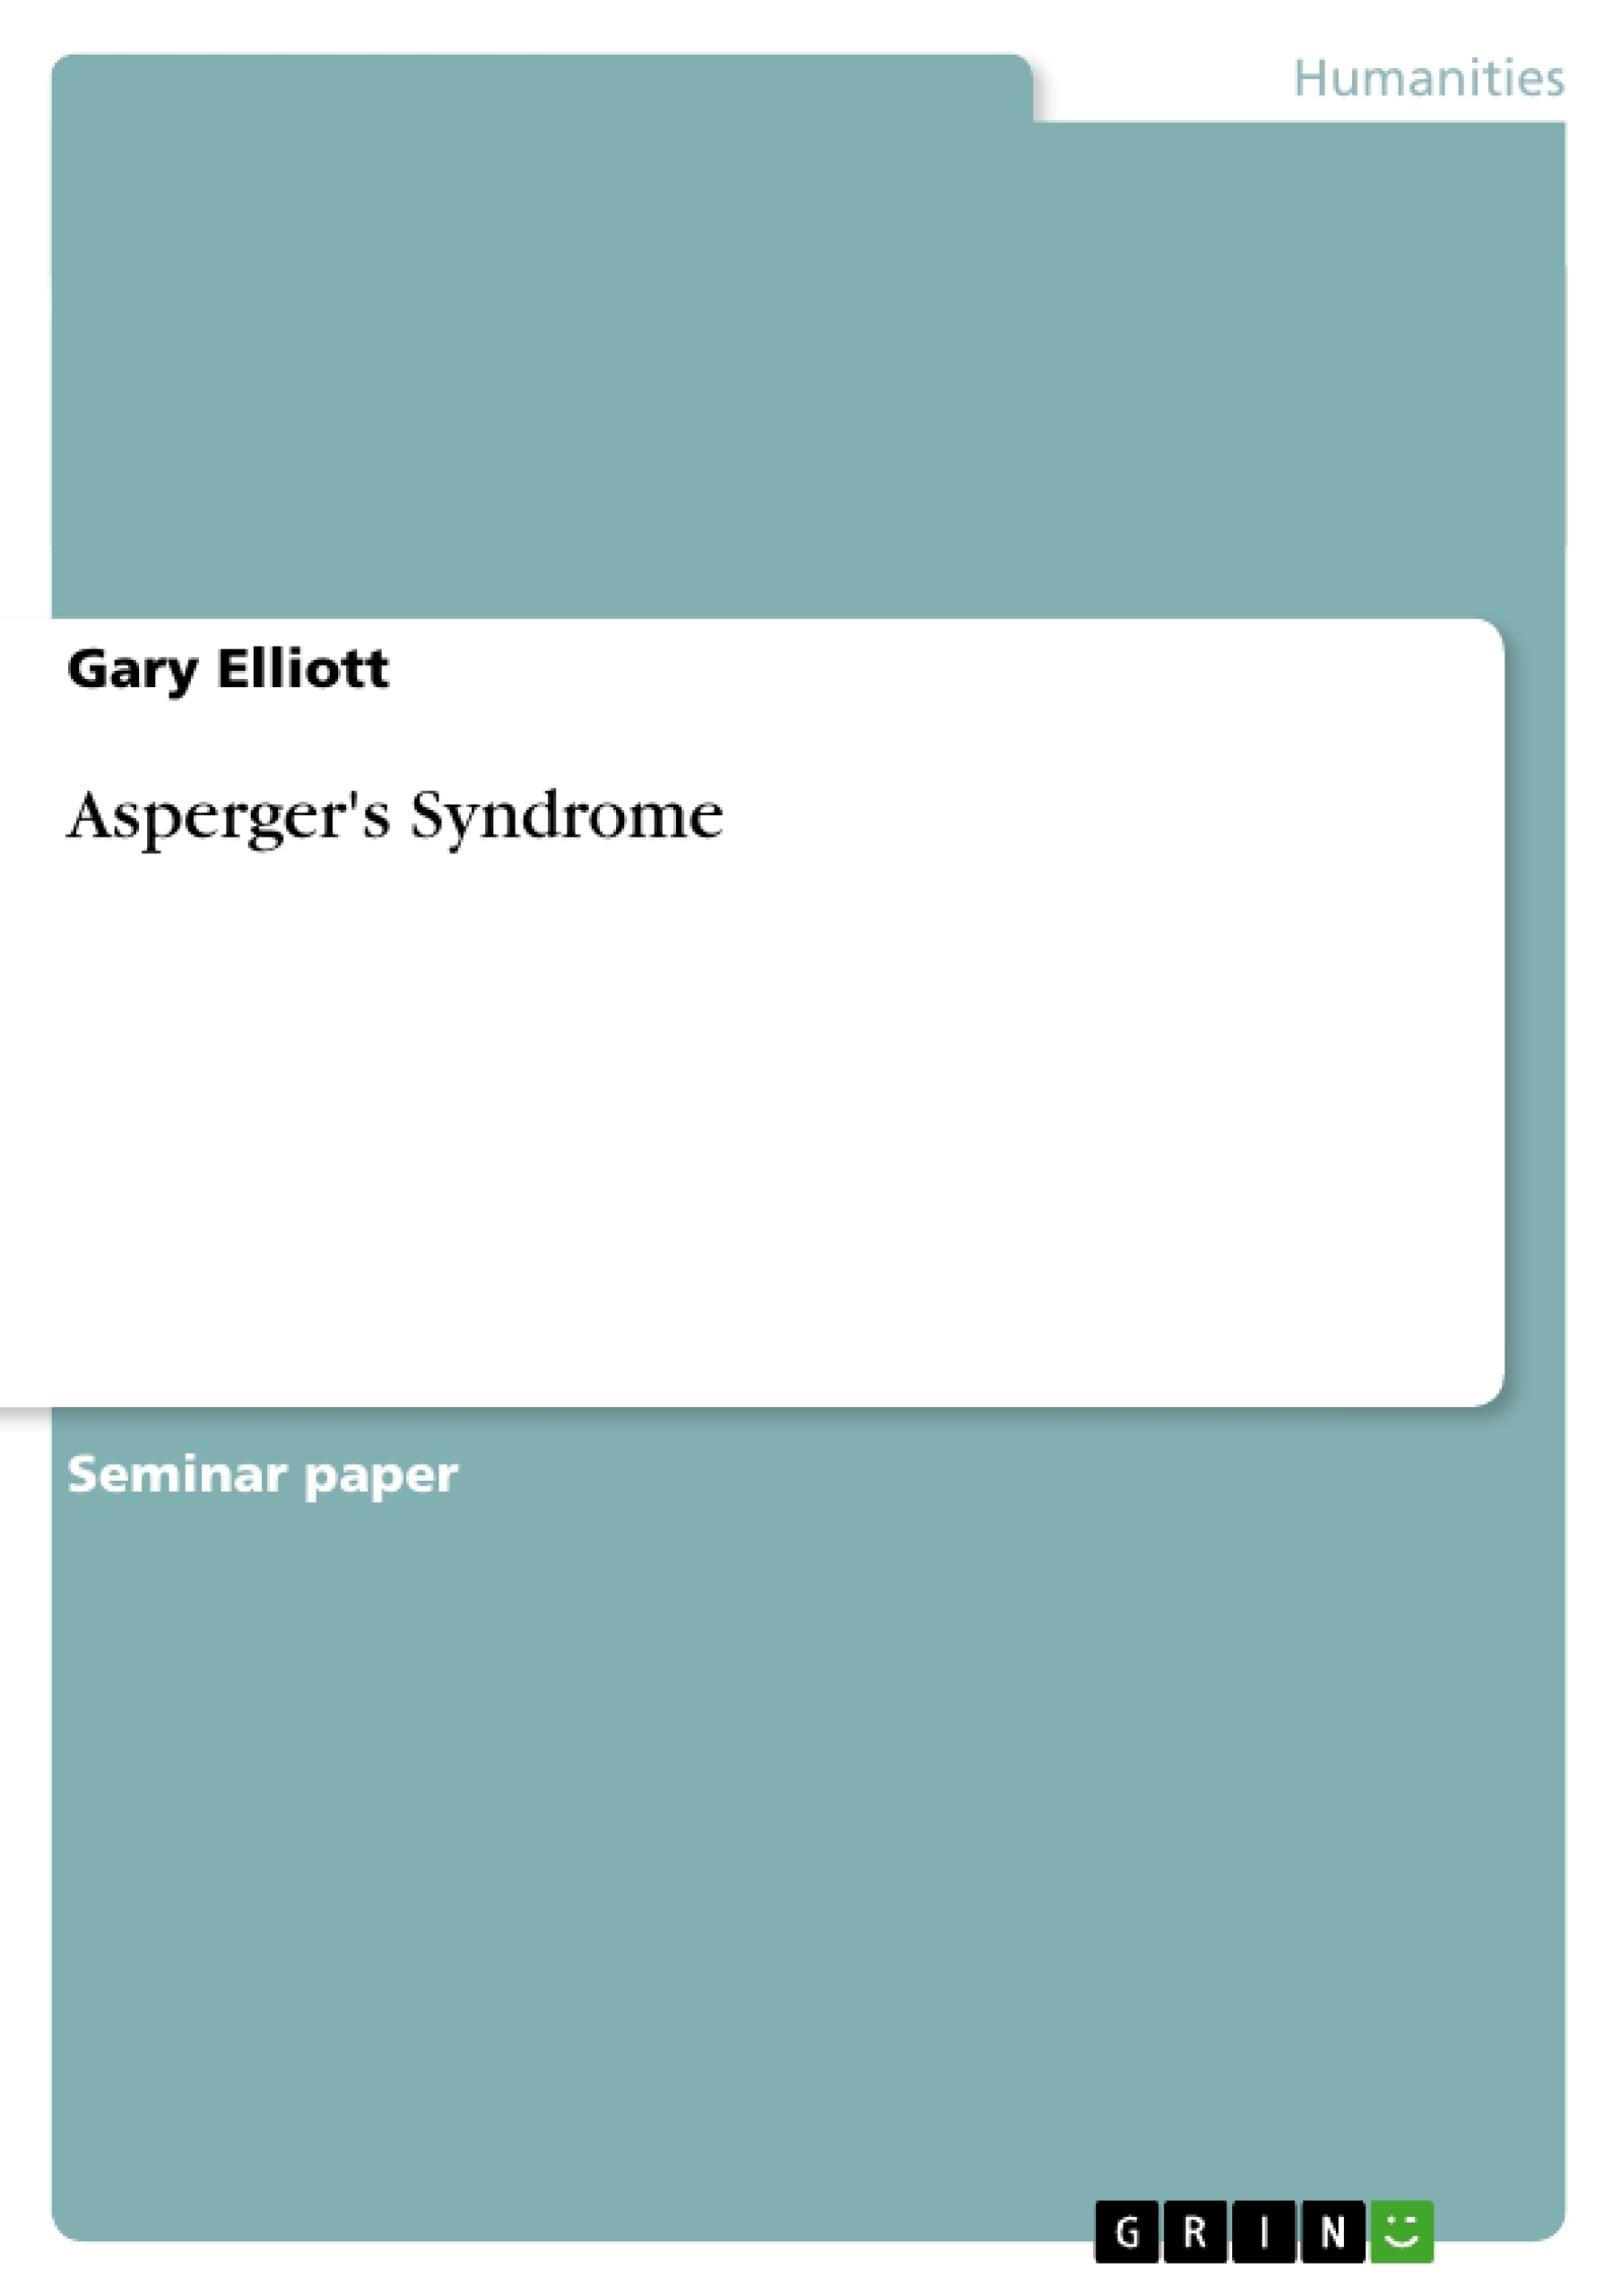 argumentative essay on asperger s syndrome One of the major differences between asperger's syndrome and autism is that, by definition, there is no speech delay in asperger's.